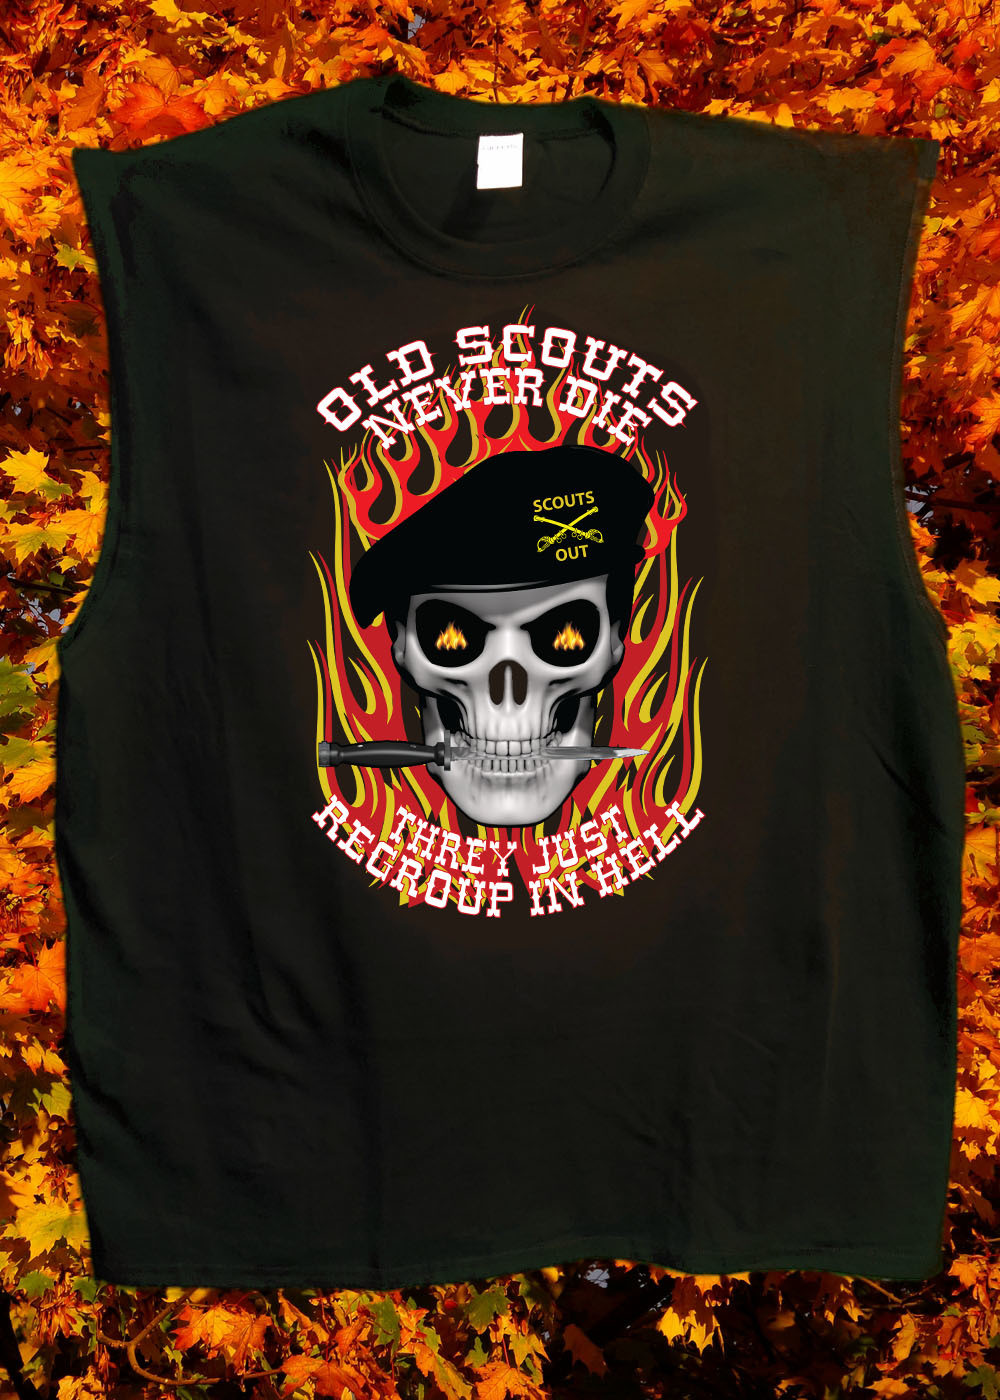 Old Scouts Never Die Black T-Shirt FREE SHIPPING